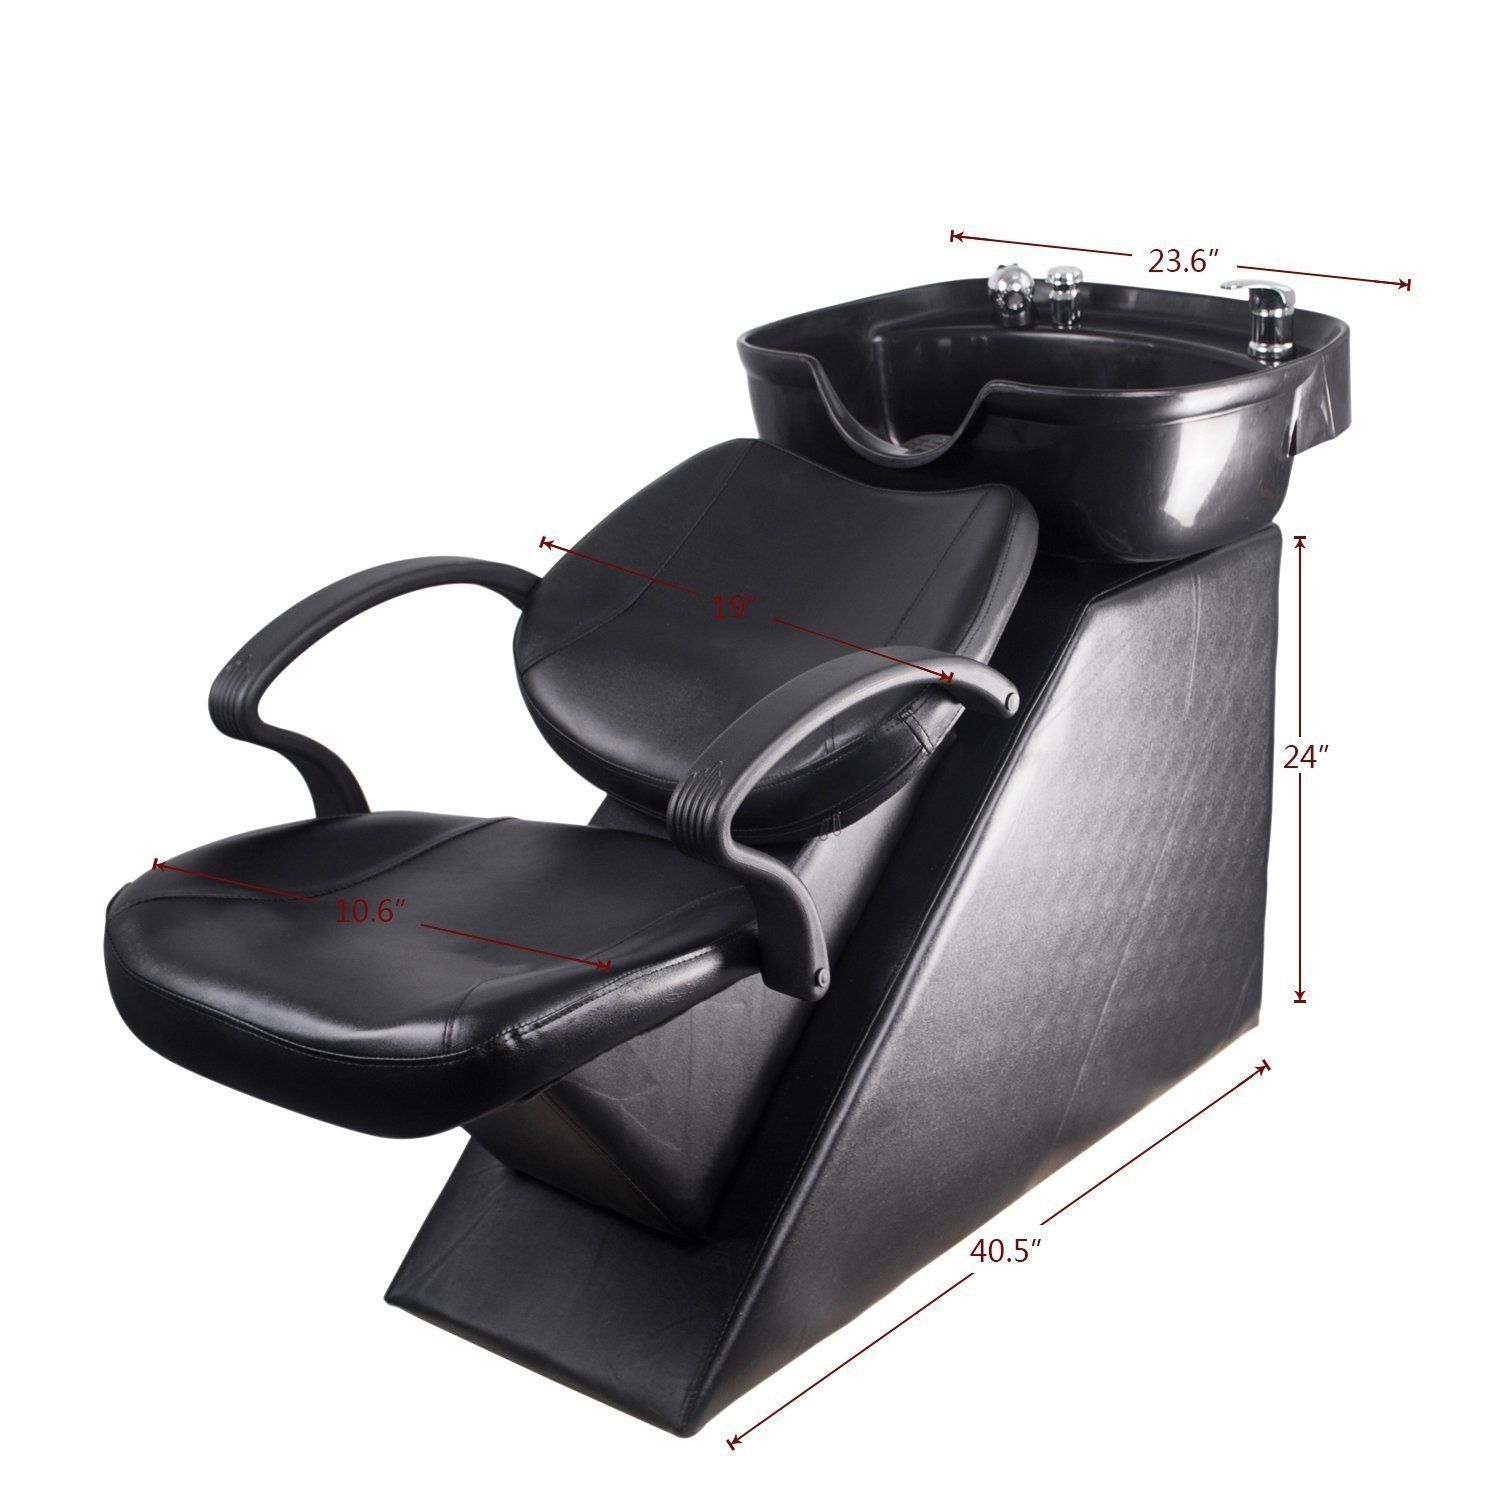 Shampoo Sink And Chair Banquet Covers Salon Barber Beauty Spa Equipment Backwash Bowl Personal Care